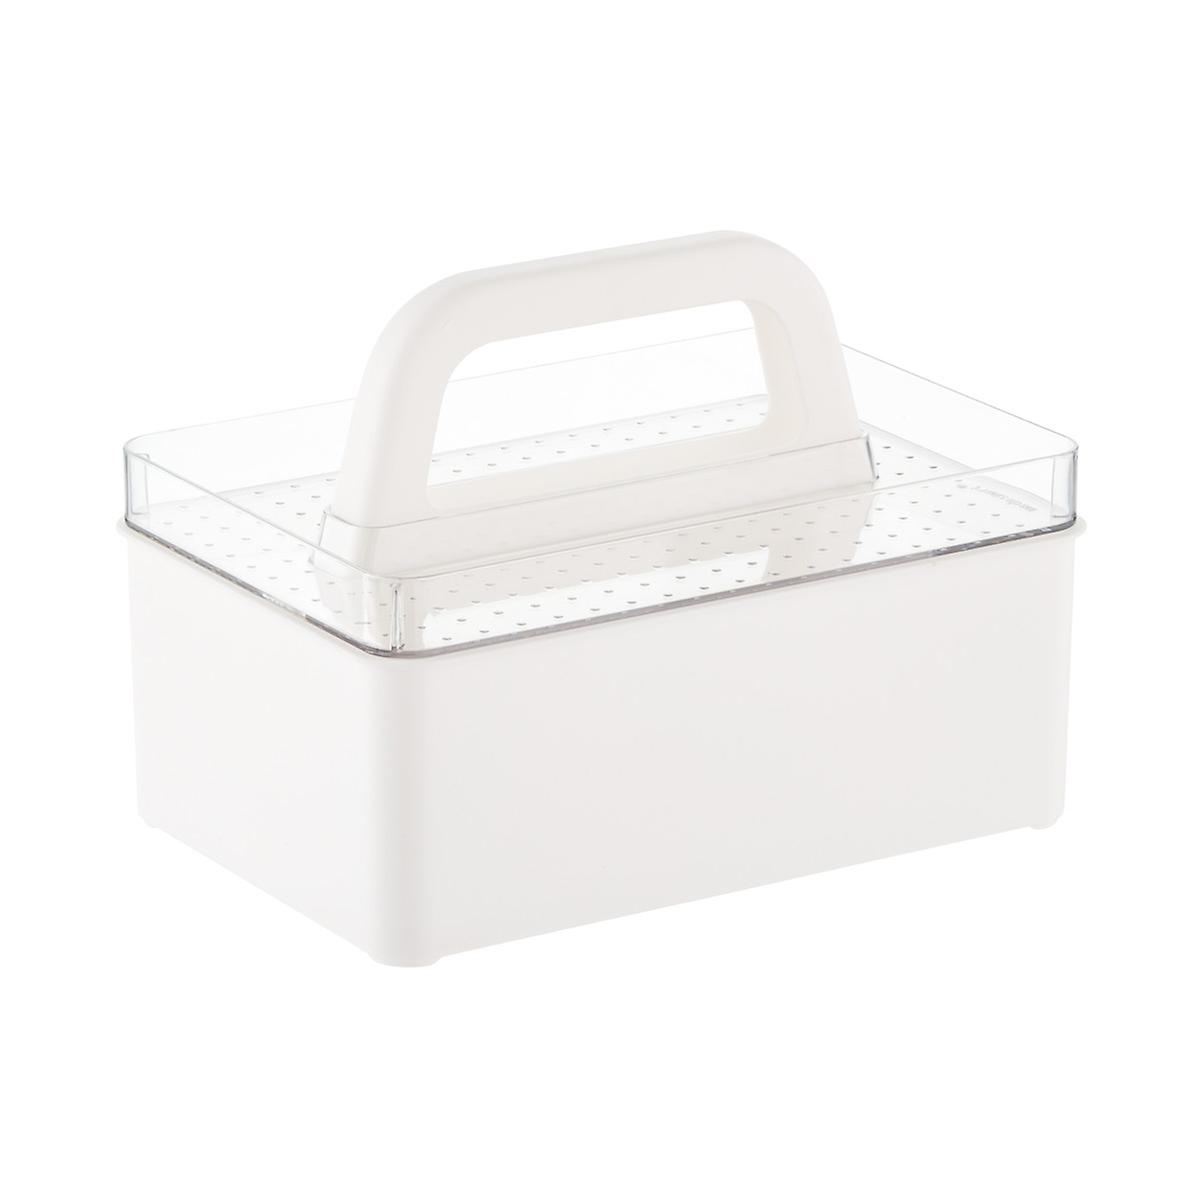 madesmart Stacking Bath Caddy Storage Kit | The Container Store